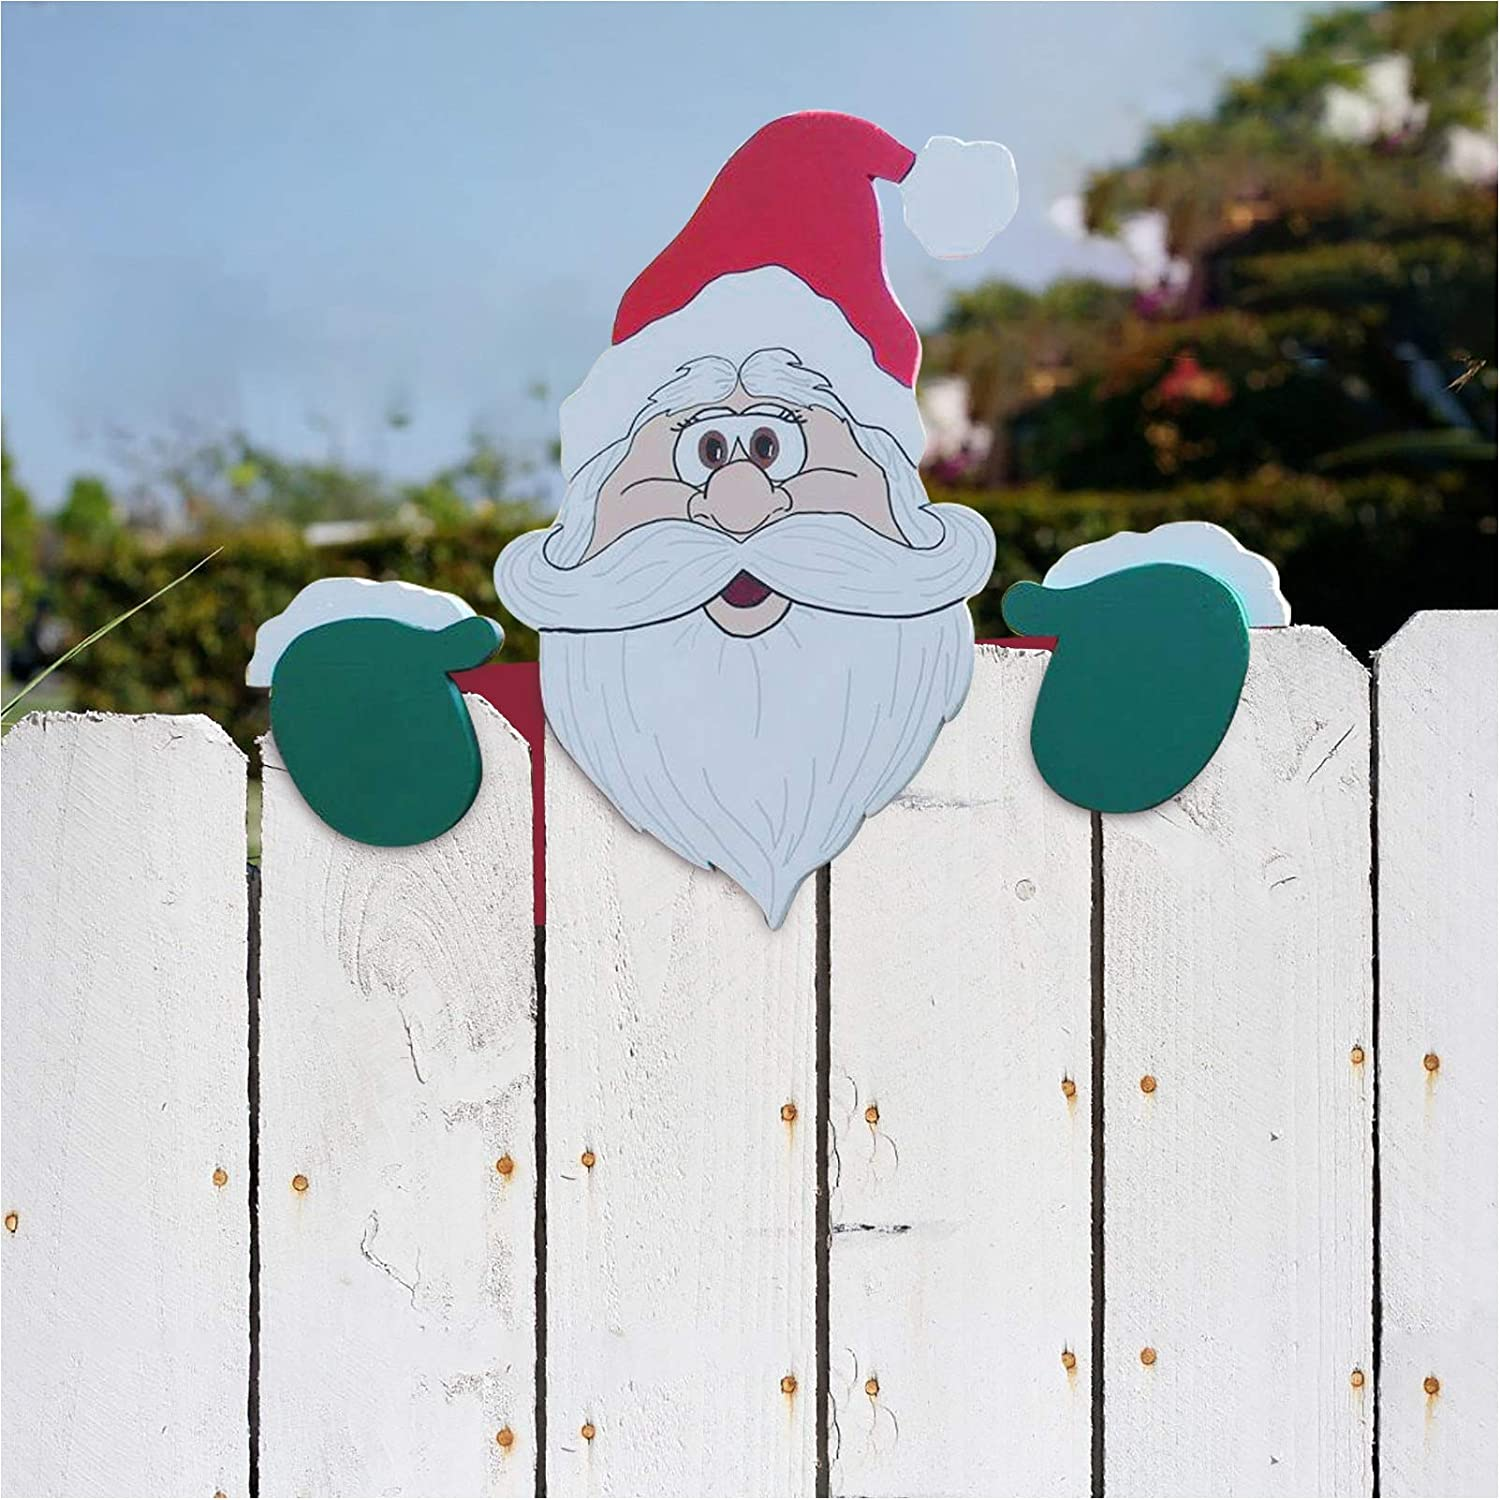 HCBY Christmas Yard Art Fence Peeker, Animal Fence and Garden Peeker, Charming Christmas Peeks at Santa Claus,for Home Outdoor Yard Lawn Pathway Parking Fence Walkway Driveway Holiday Decorations